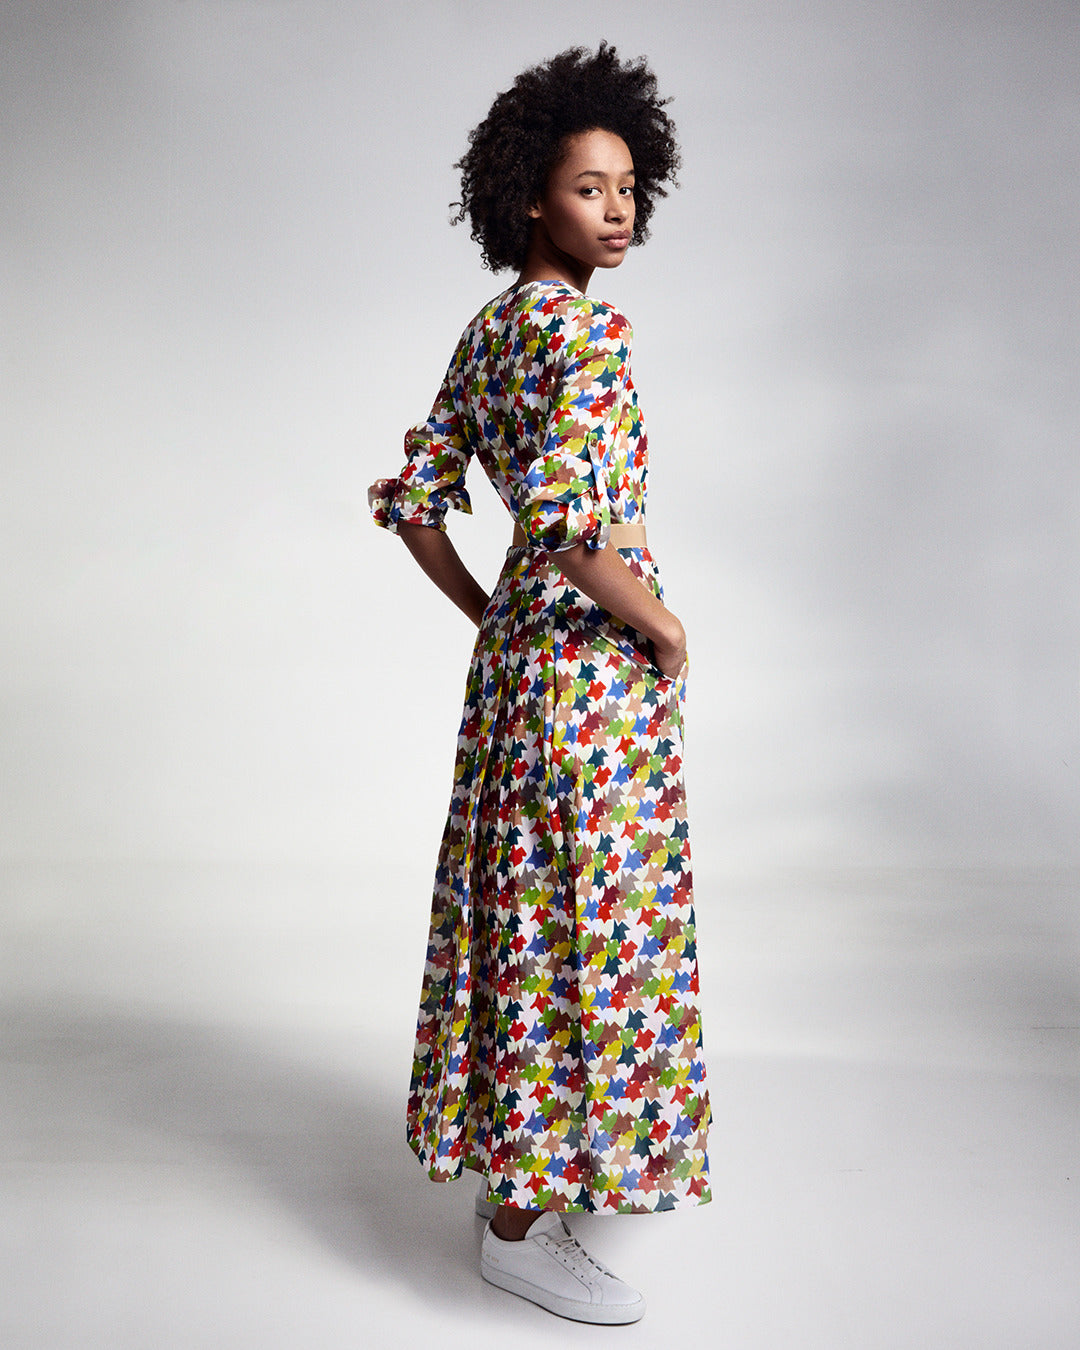 Imi Knoebel's Kinderstern as allover print on cotton voile maxi dress featuring a pleated skirt